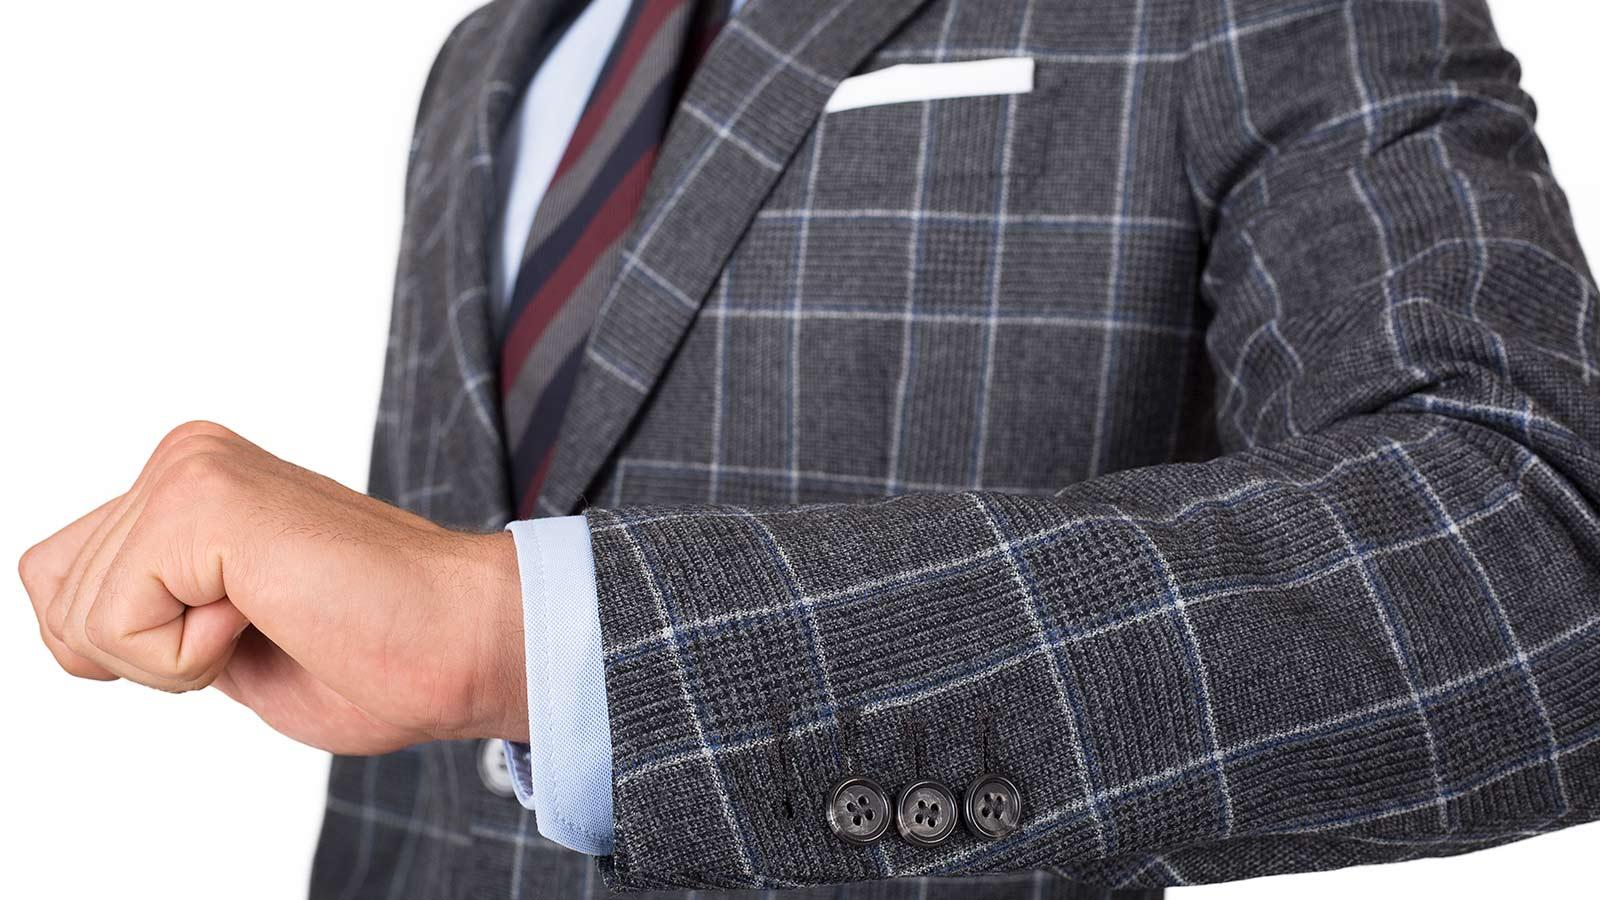 Grey Plaid Wool Flannel Suit - slider image 1